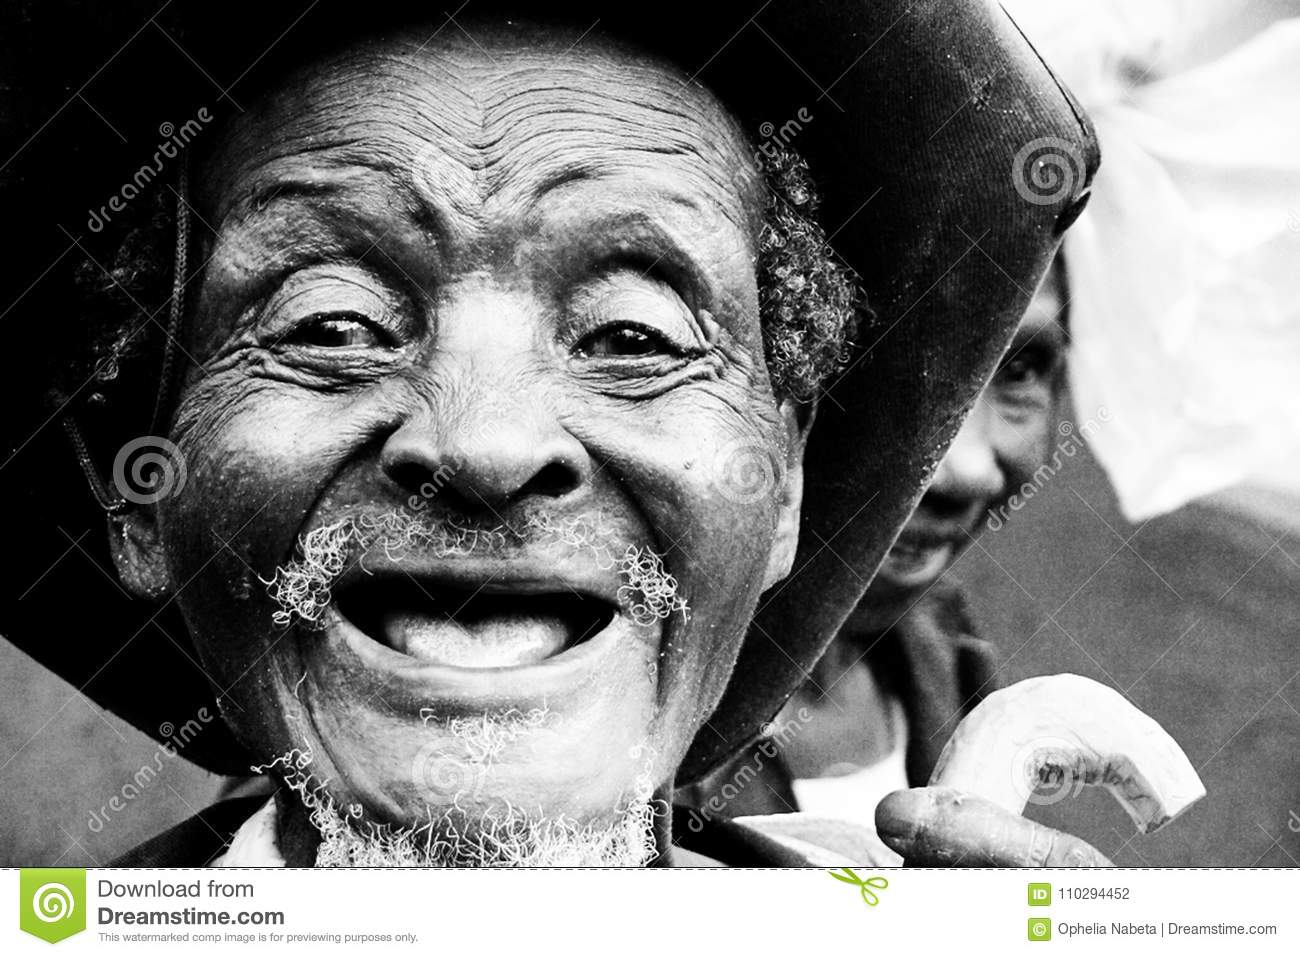 Old people with no teeth